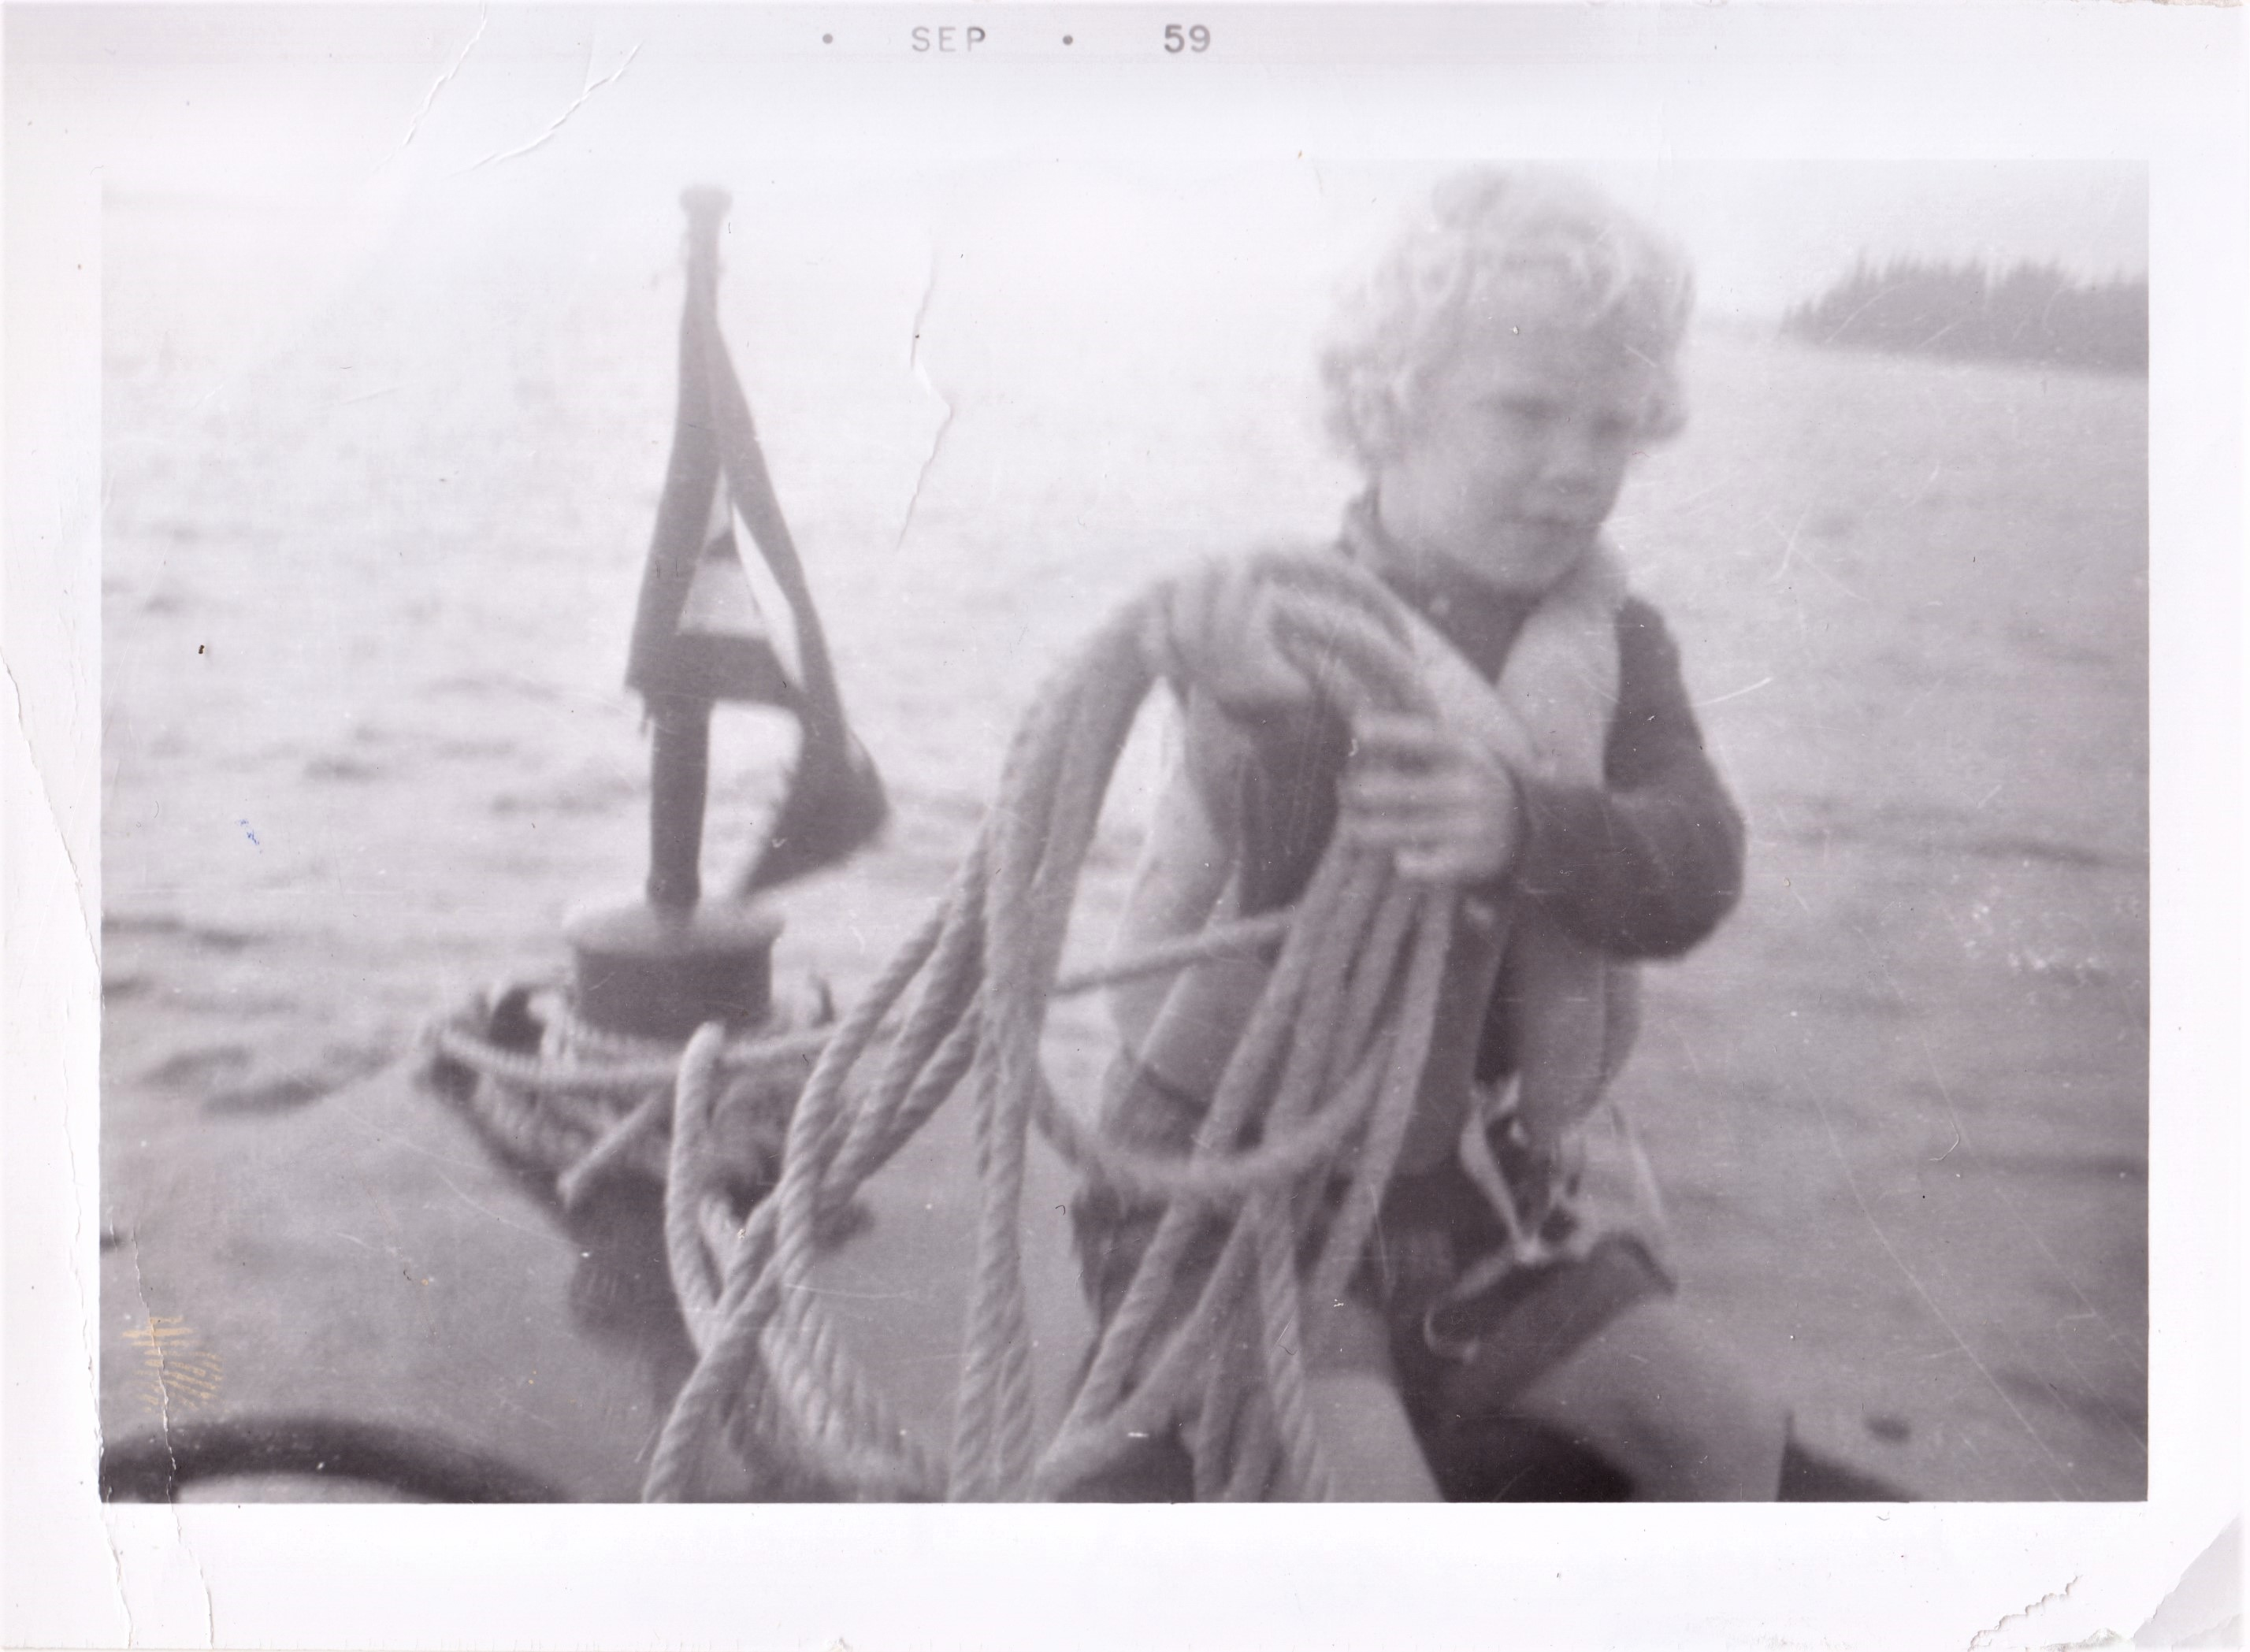 On Boat with Rope